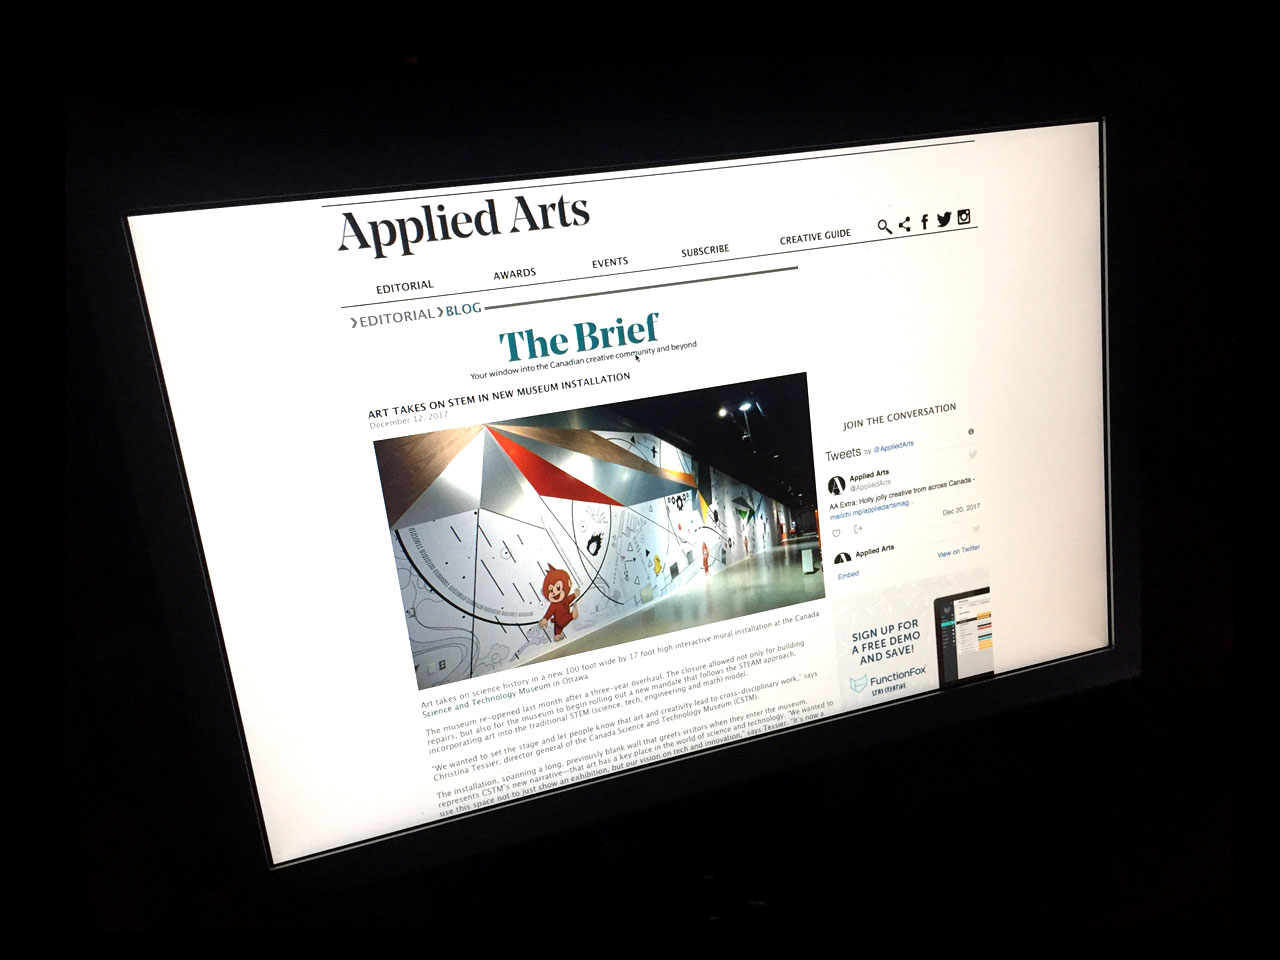 appiled arts